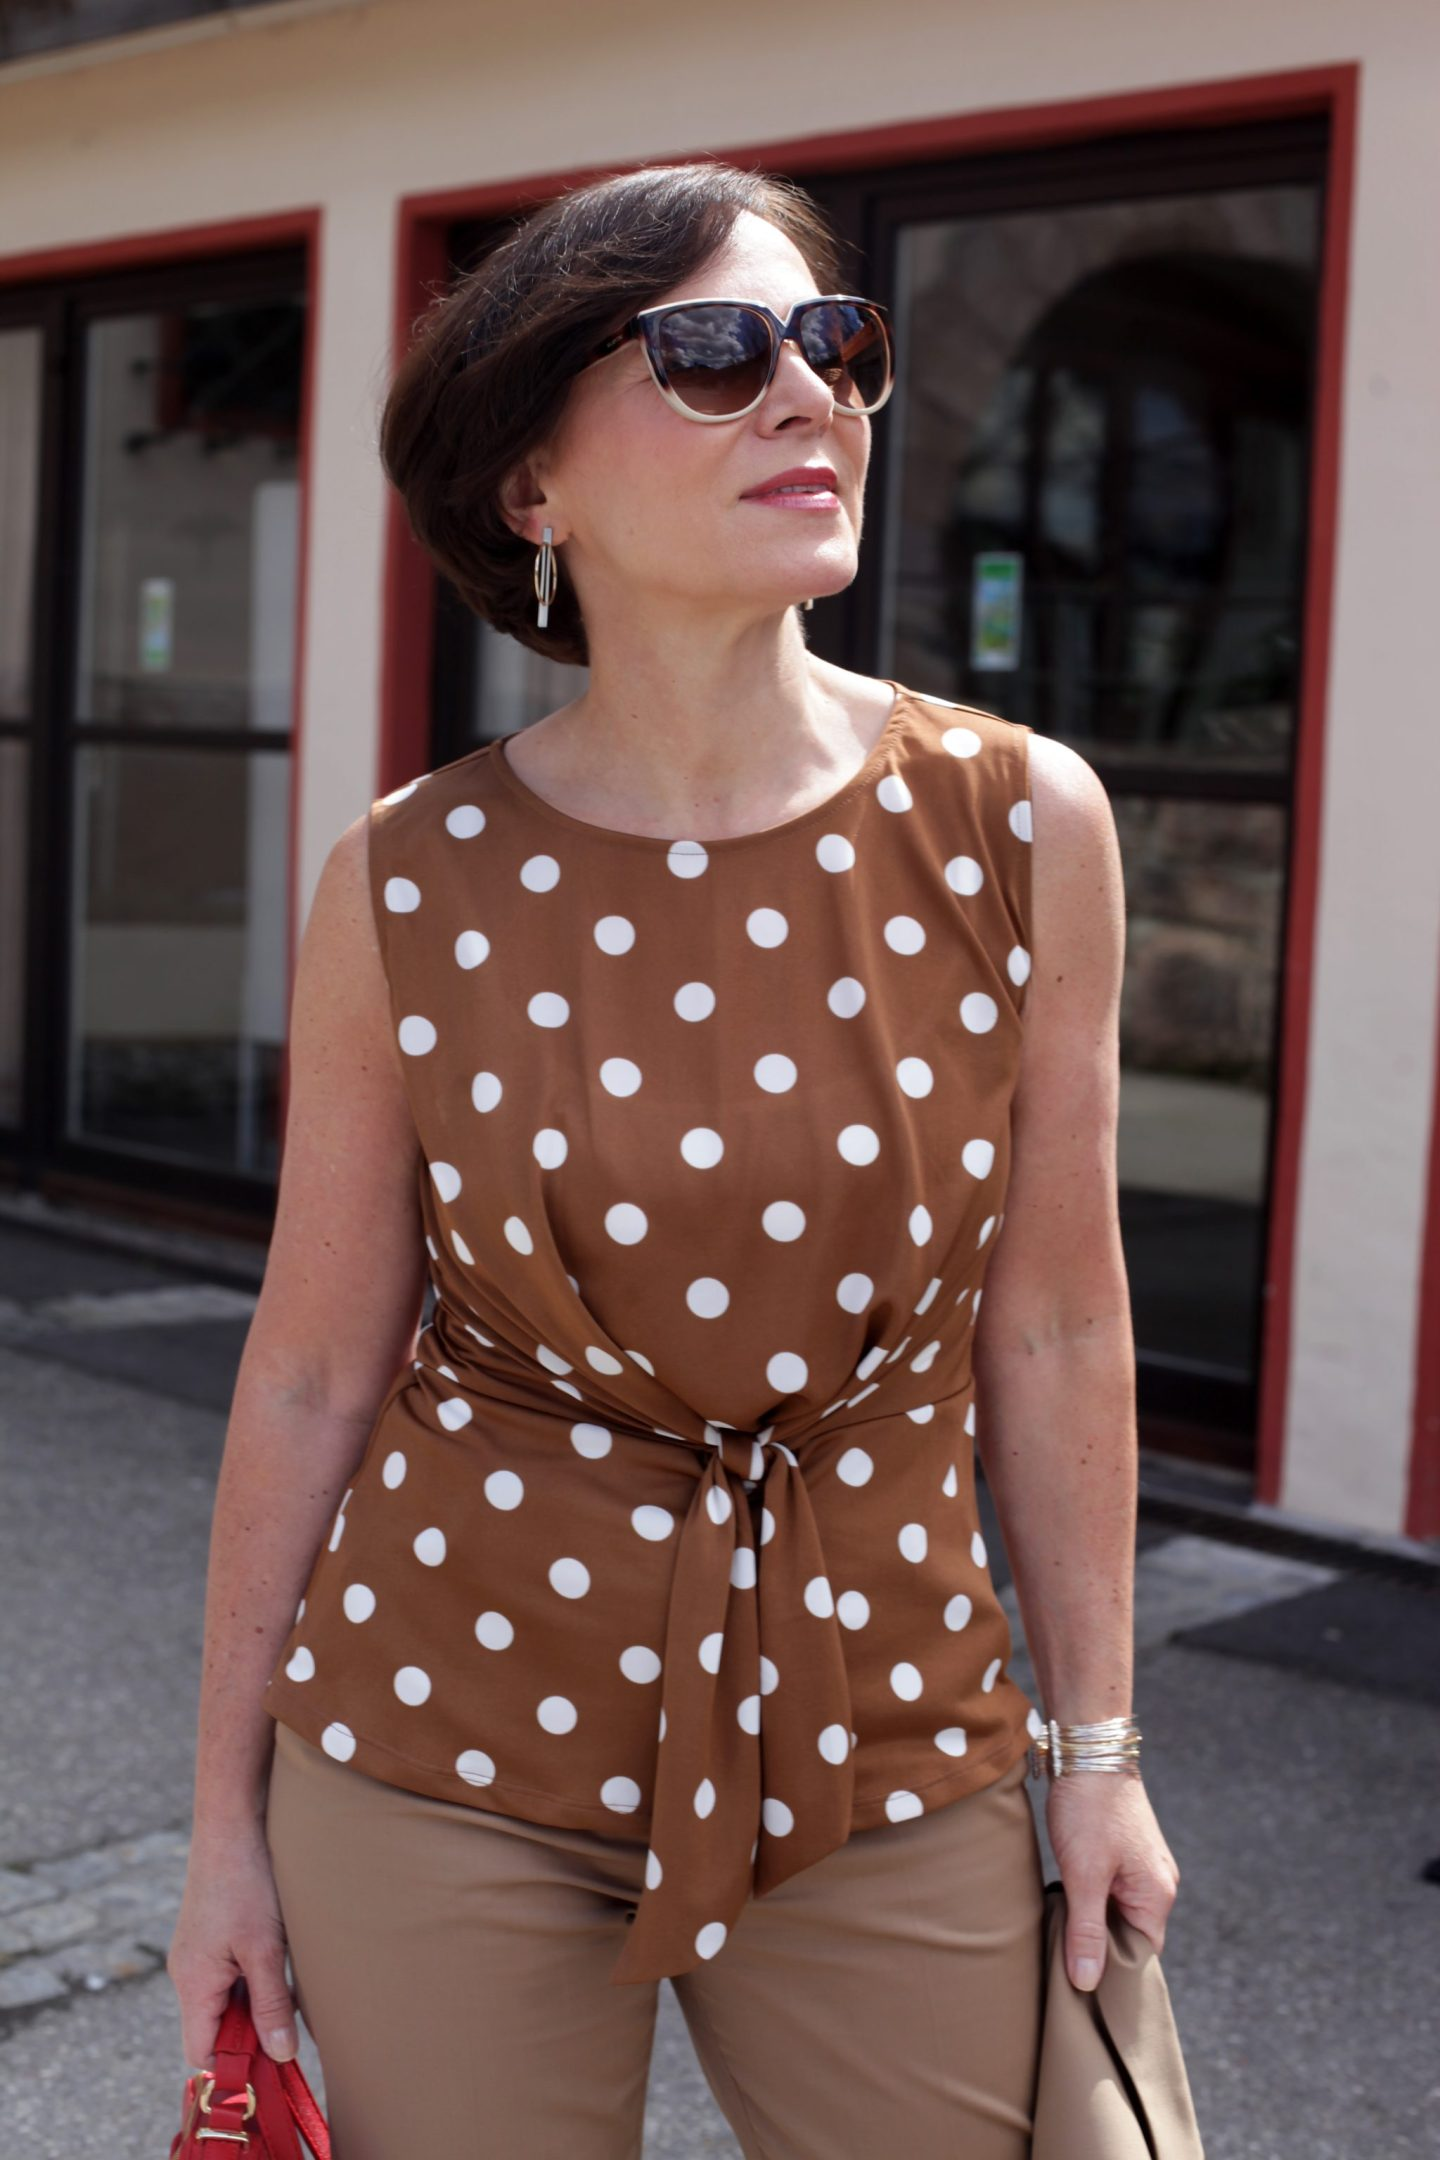 Hosenanzug Braun Polka Dots Pretty Woman Businesslook 50plus LadyofStyle